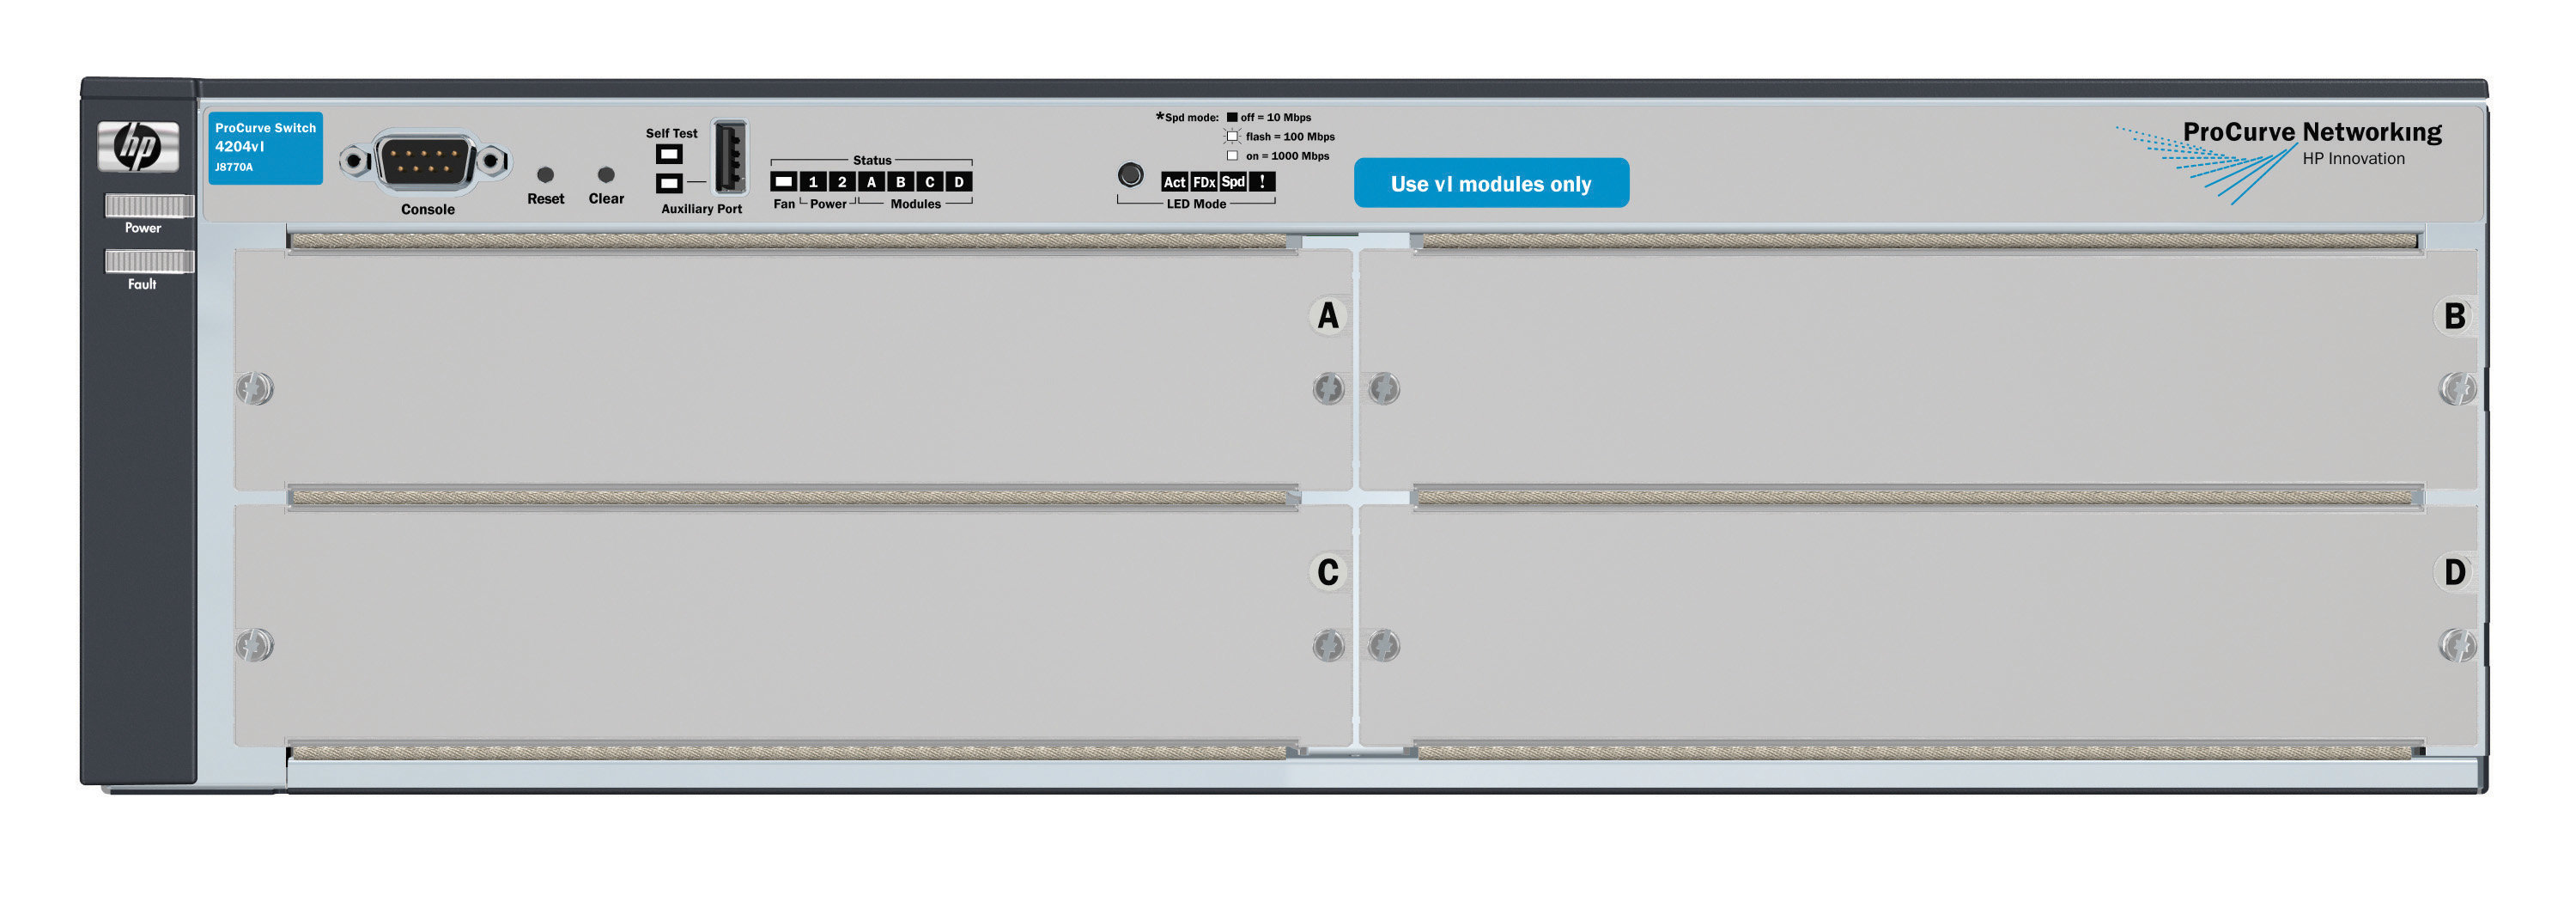 HPE 4204 vl Chassis - Switch | Product Details | shi com